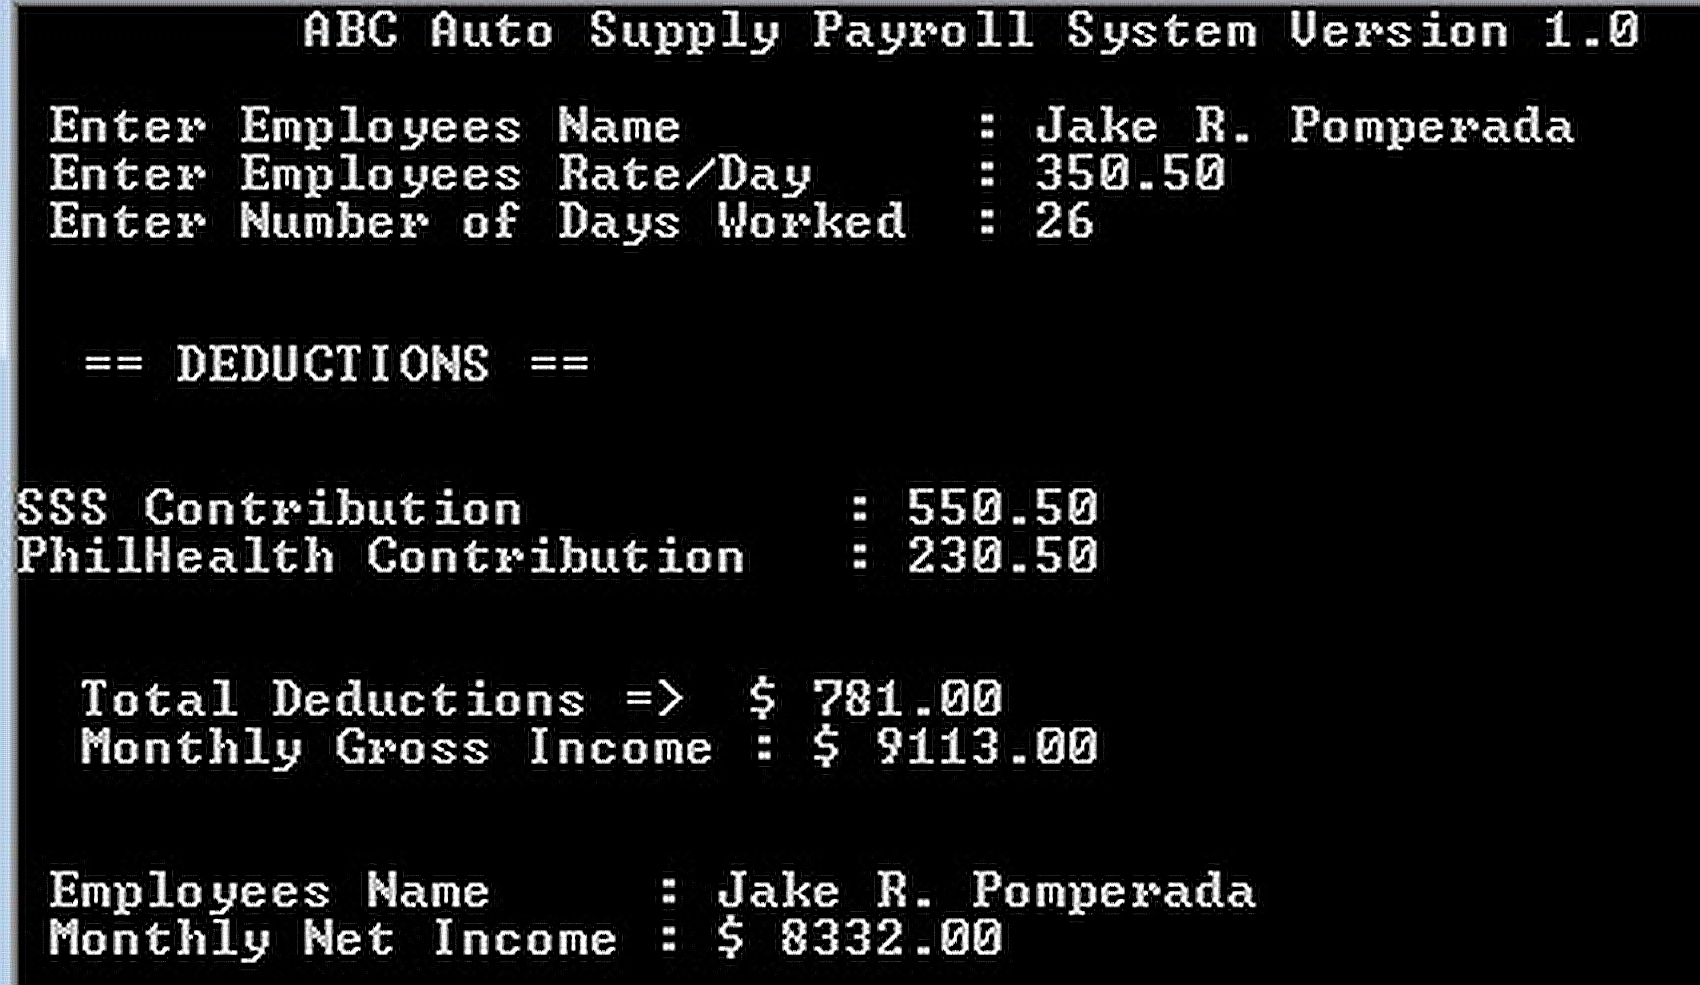 Abc Auto Supply Payroll System Version 1 0 Using Struct